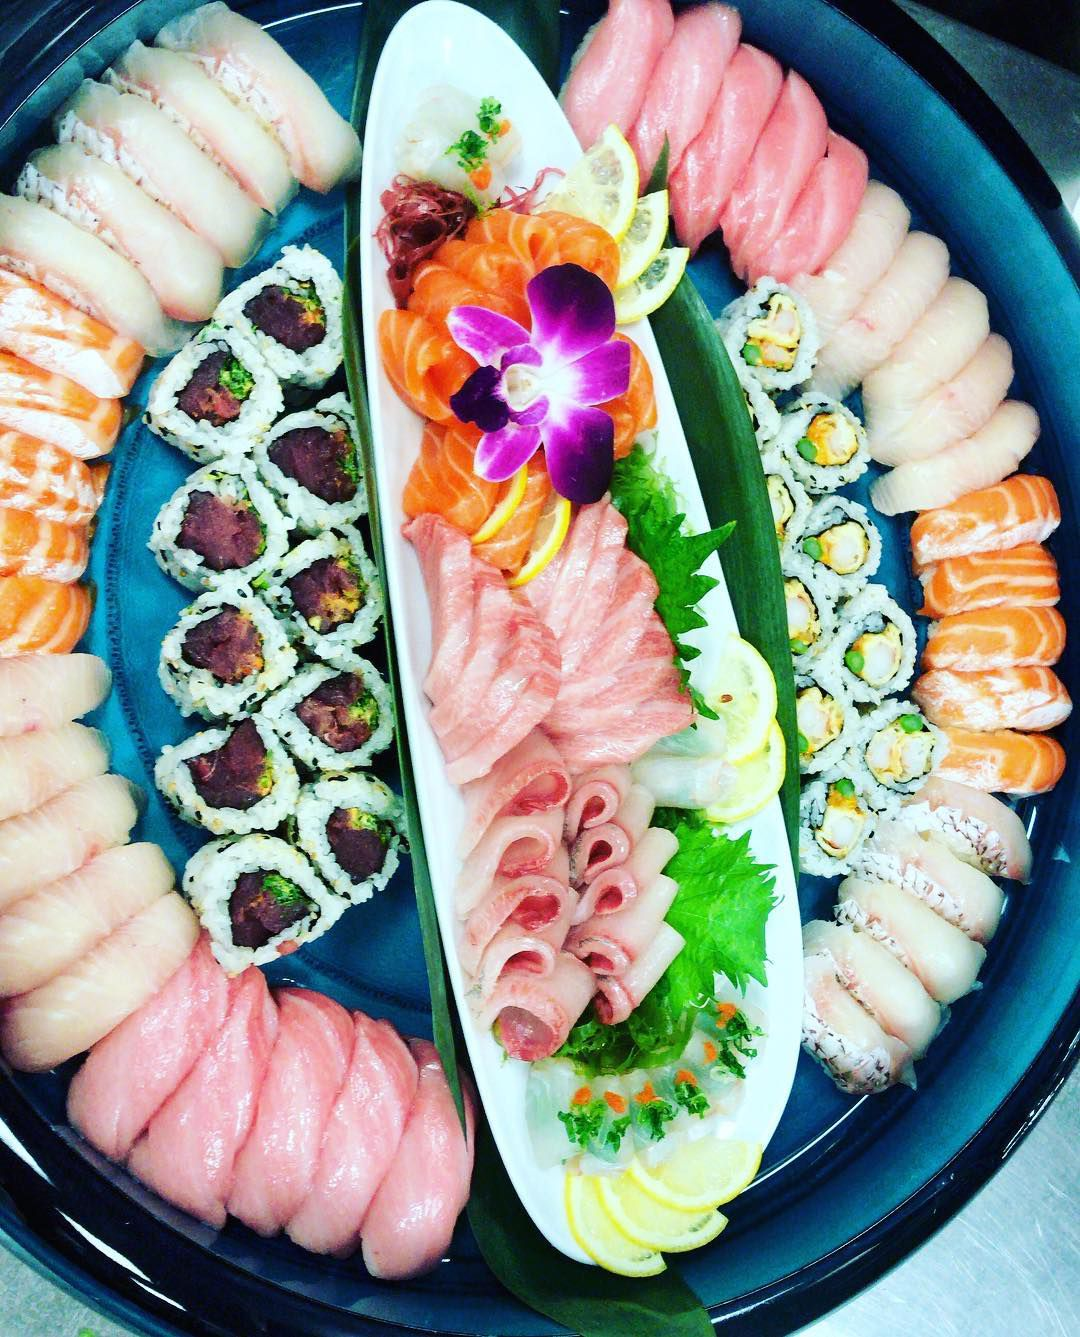 A round plate with sushi and sashimi